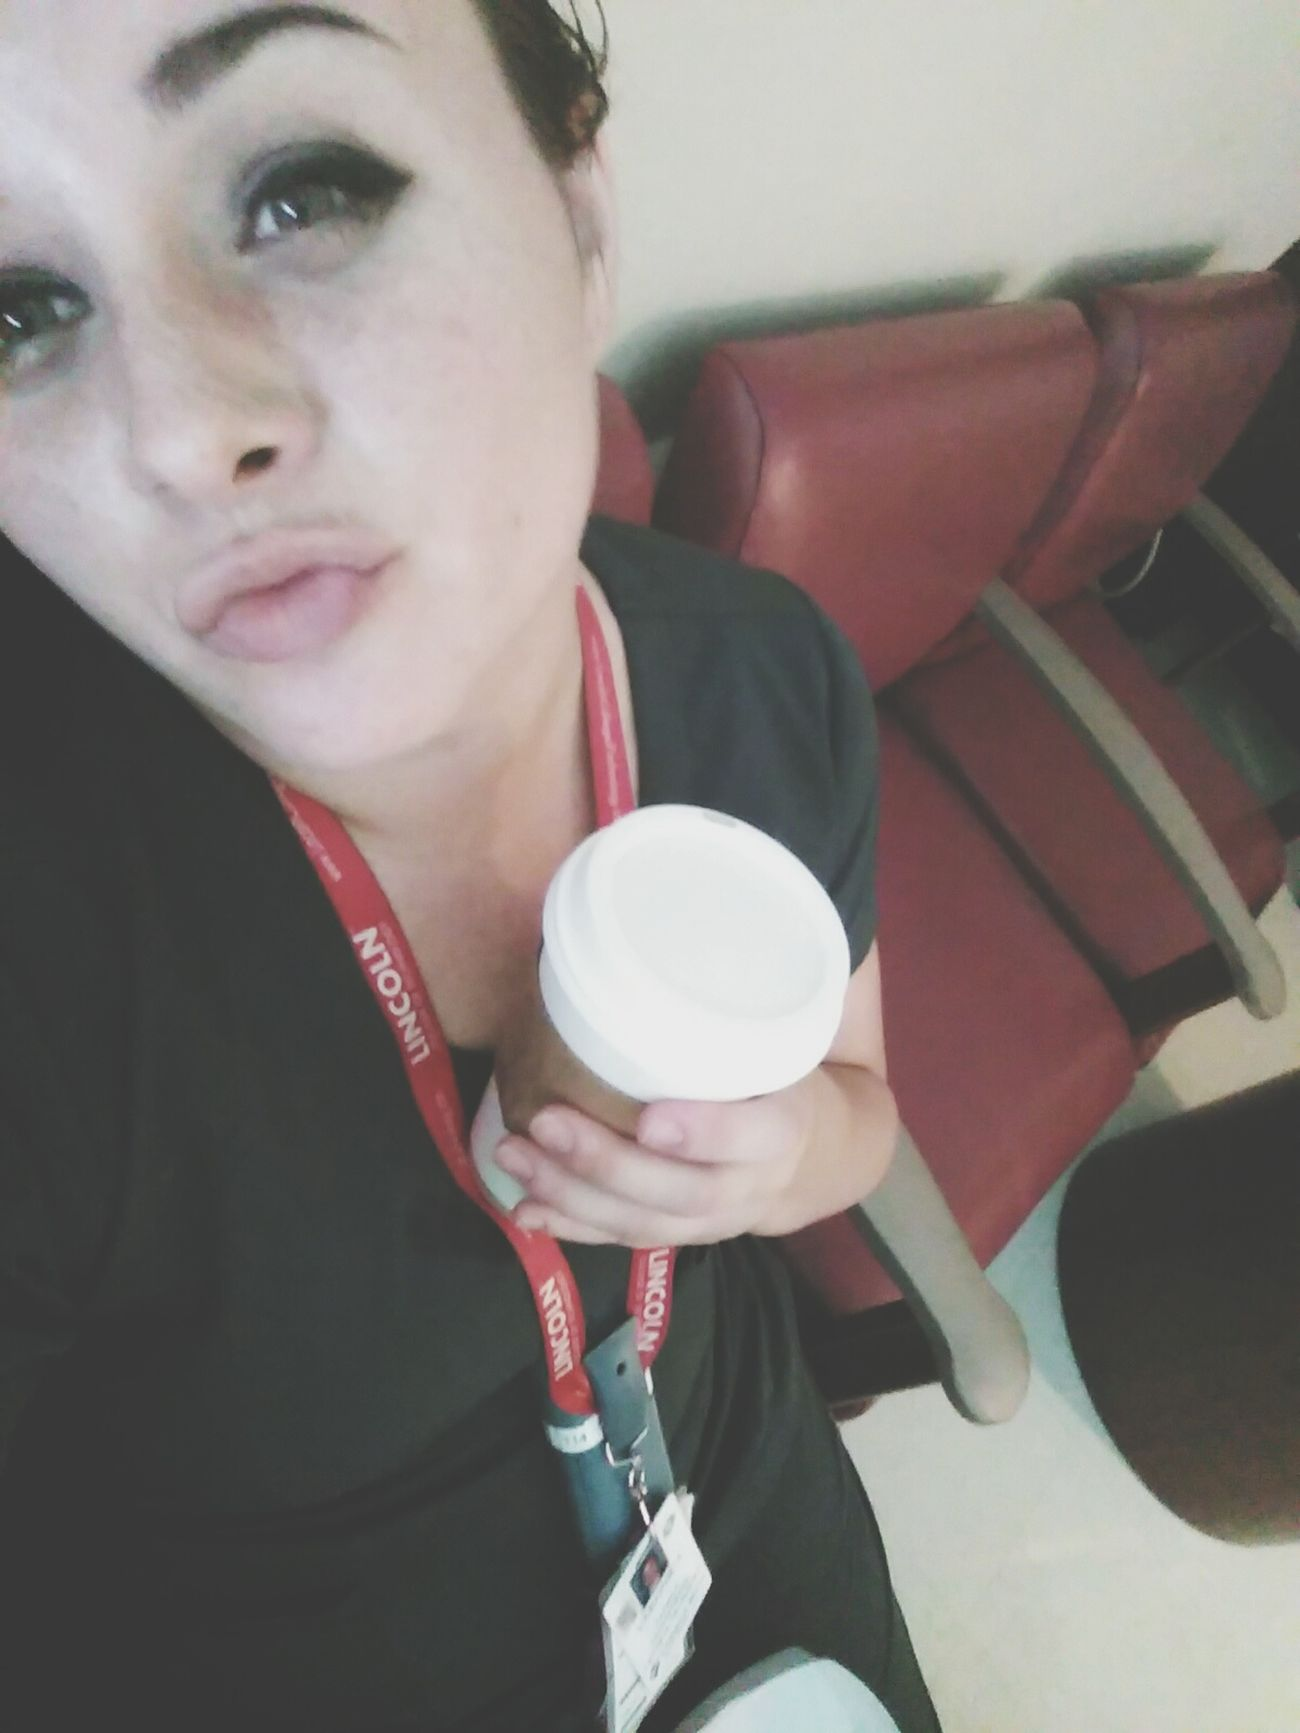 Welcome to Shoreline hospital.. Where i move you places and run on Starbucks 12 hours everyday.